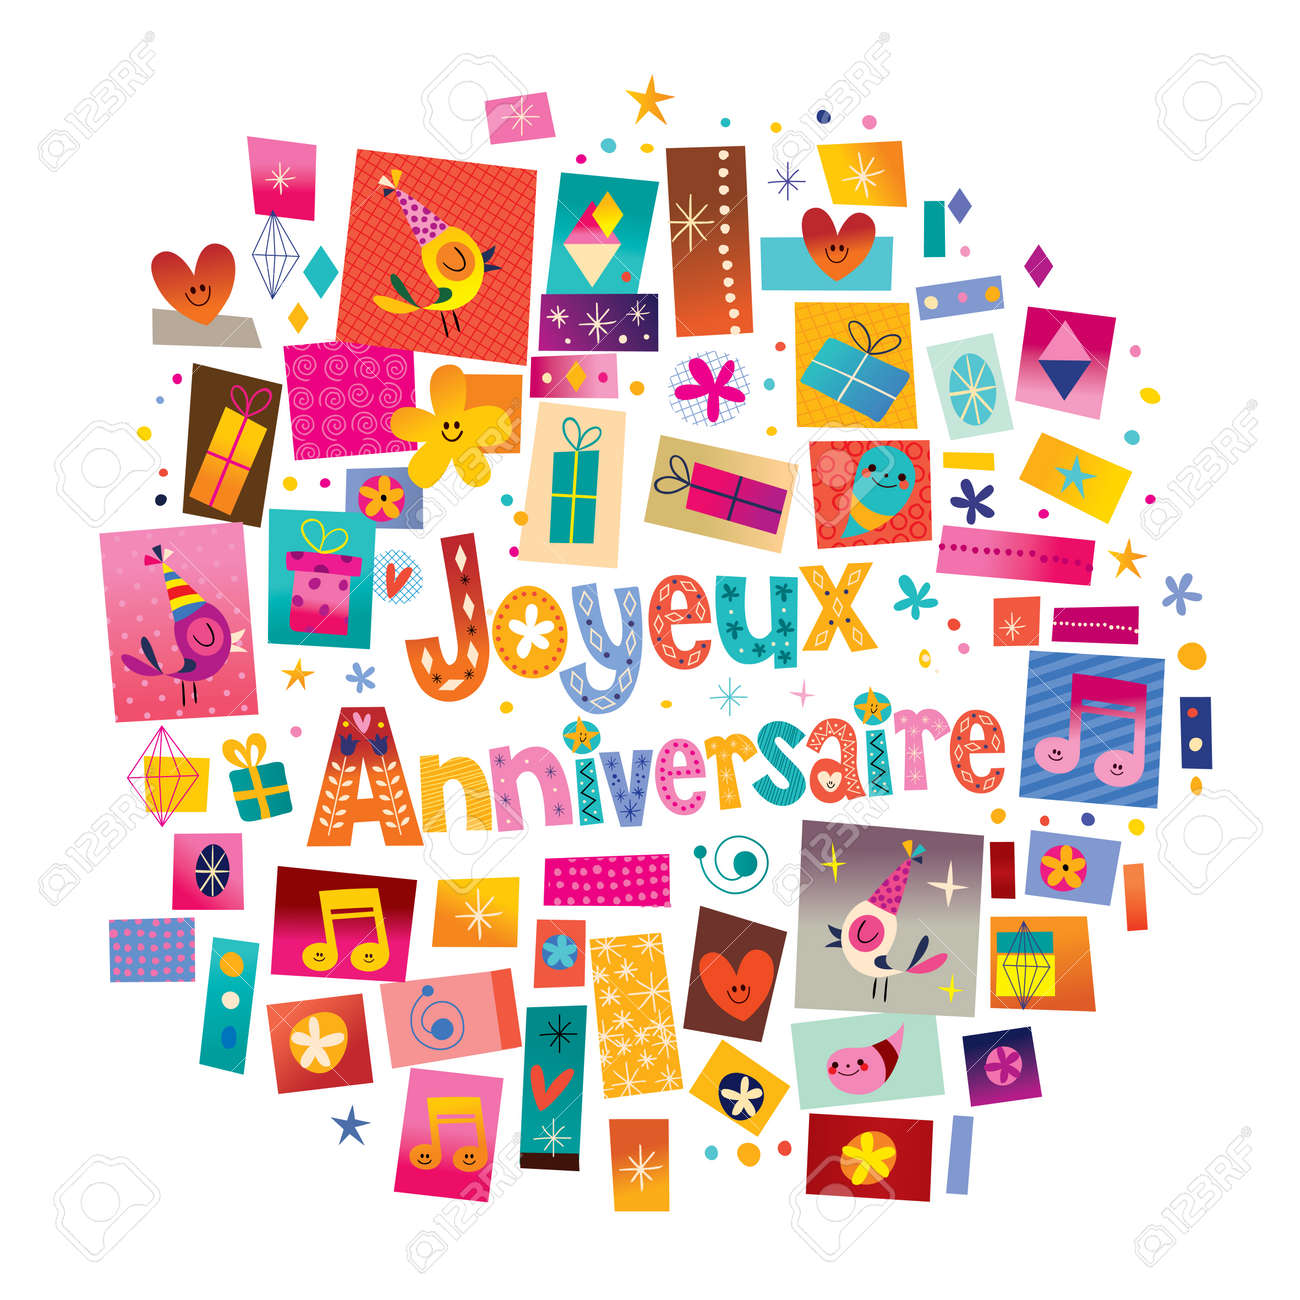 Joyeux anniversaire happy birthday in french greeting card royalty joyeux anniversaire happy birthday in french greeting card stock vector 78610588 m4hsunfo